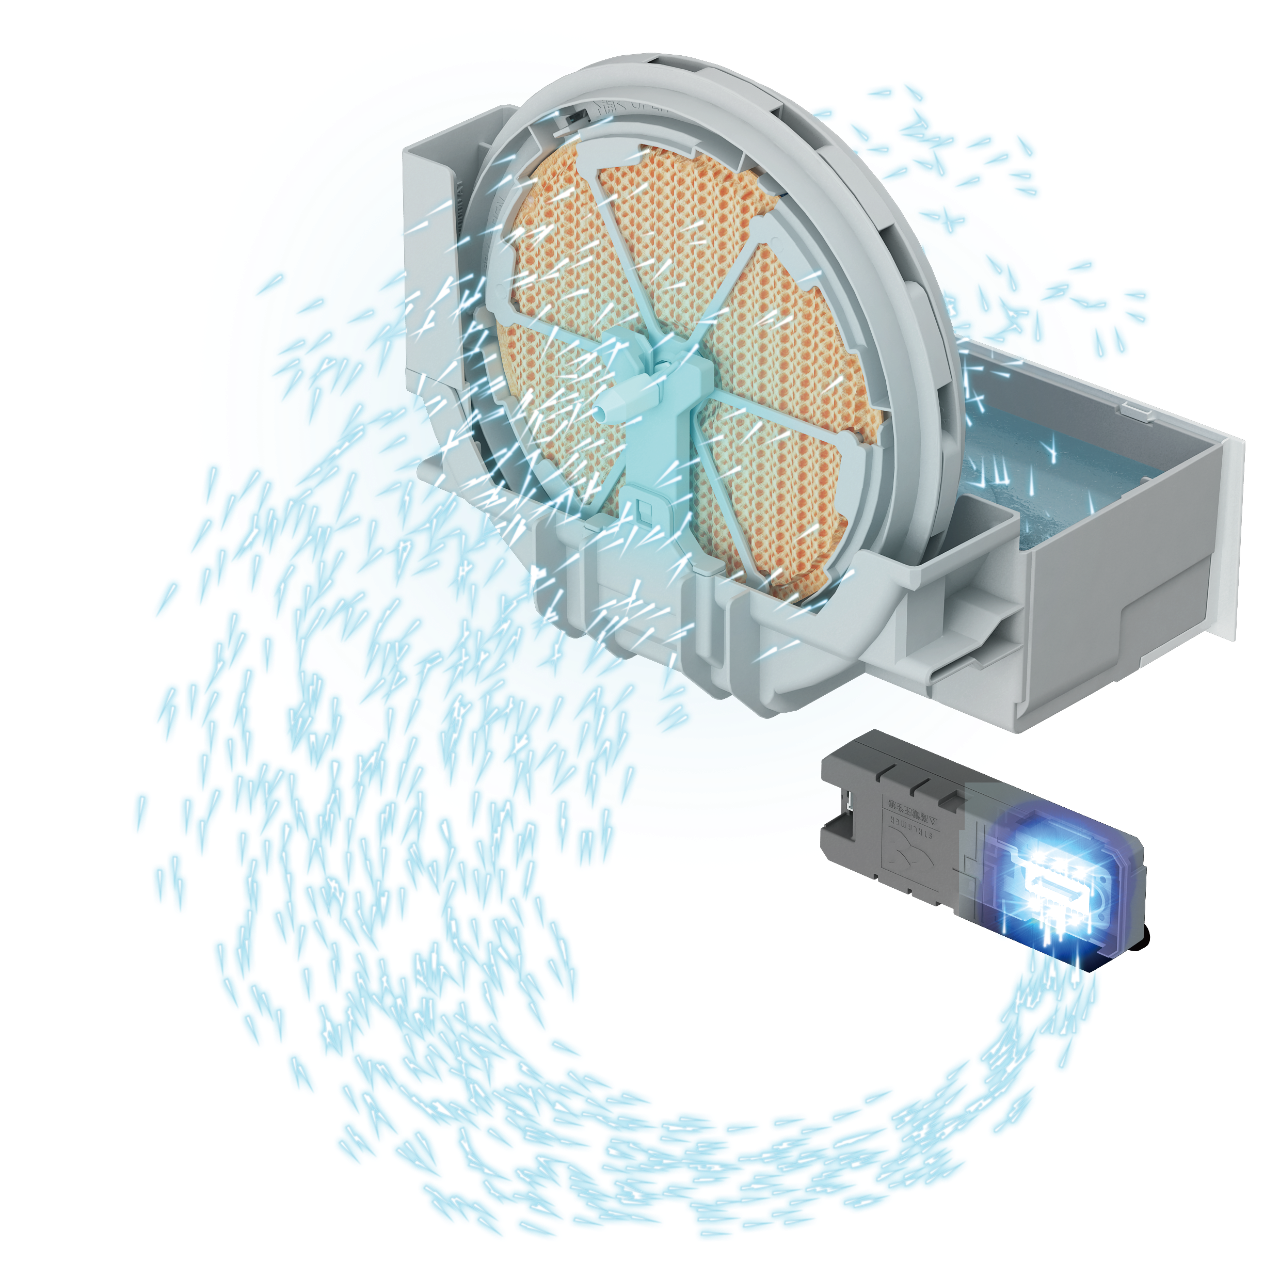 MCK55W_humidifying function_illustration.png